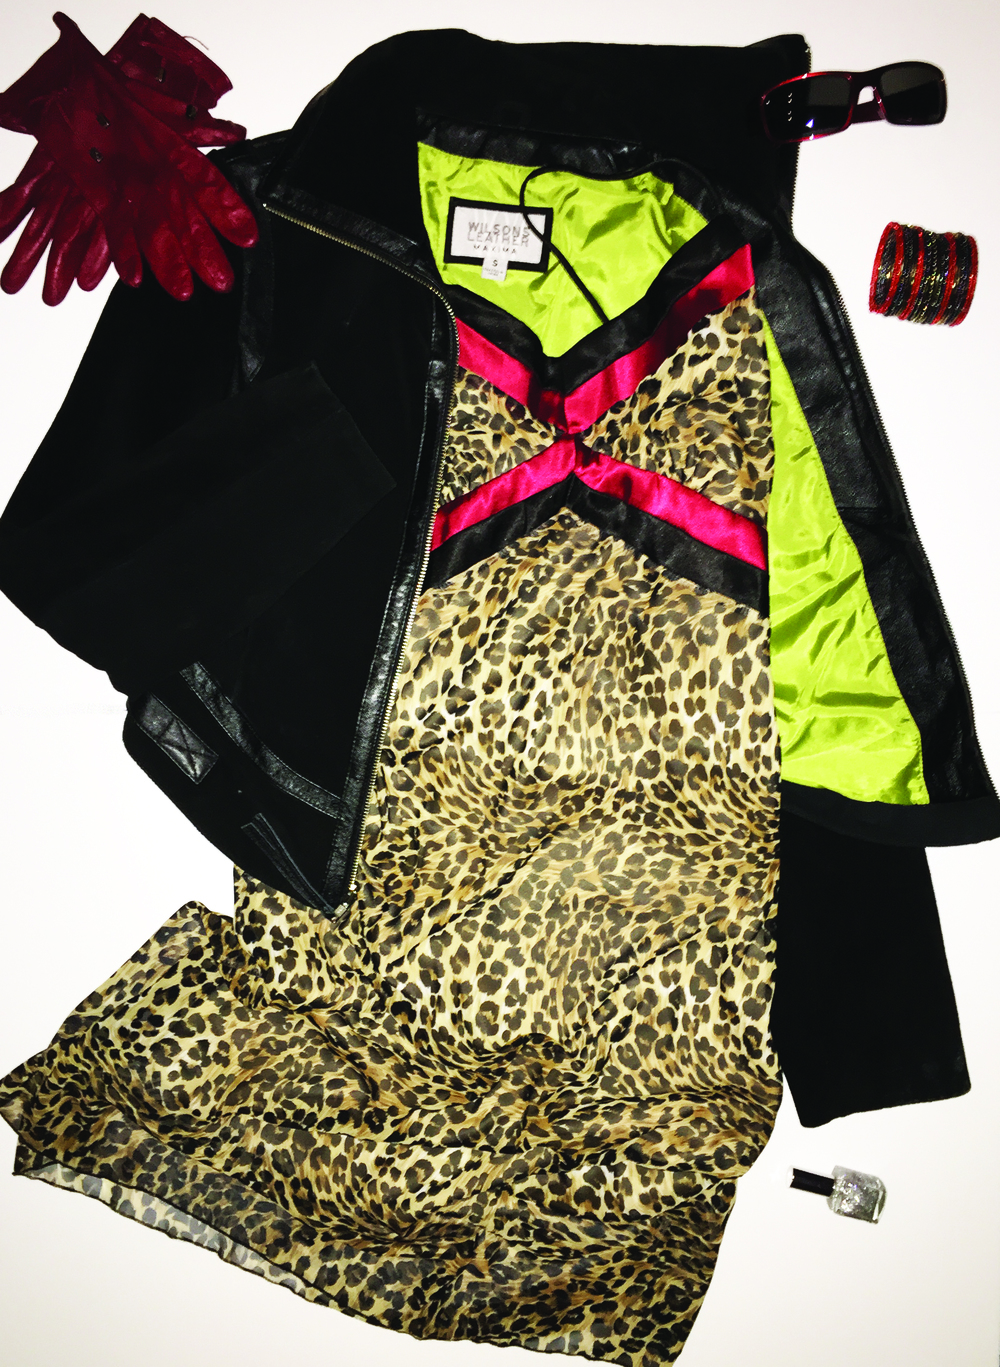 Sass up your style in animal print sexy dresses. Add a suede jacket, soft red leather gloves, then step out, hard!